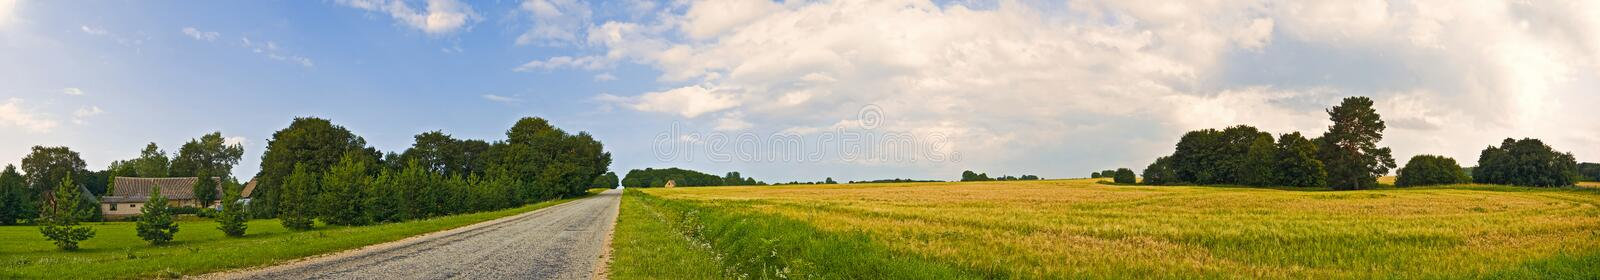 Panoramic countryside wide view of road with trees and village behind. Rural summer landscape. Typical european pastoral field stock image